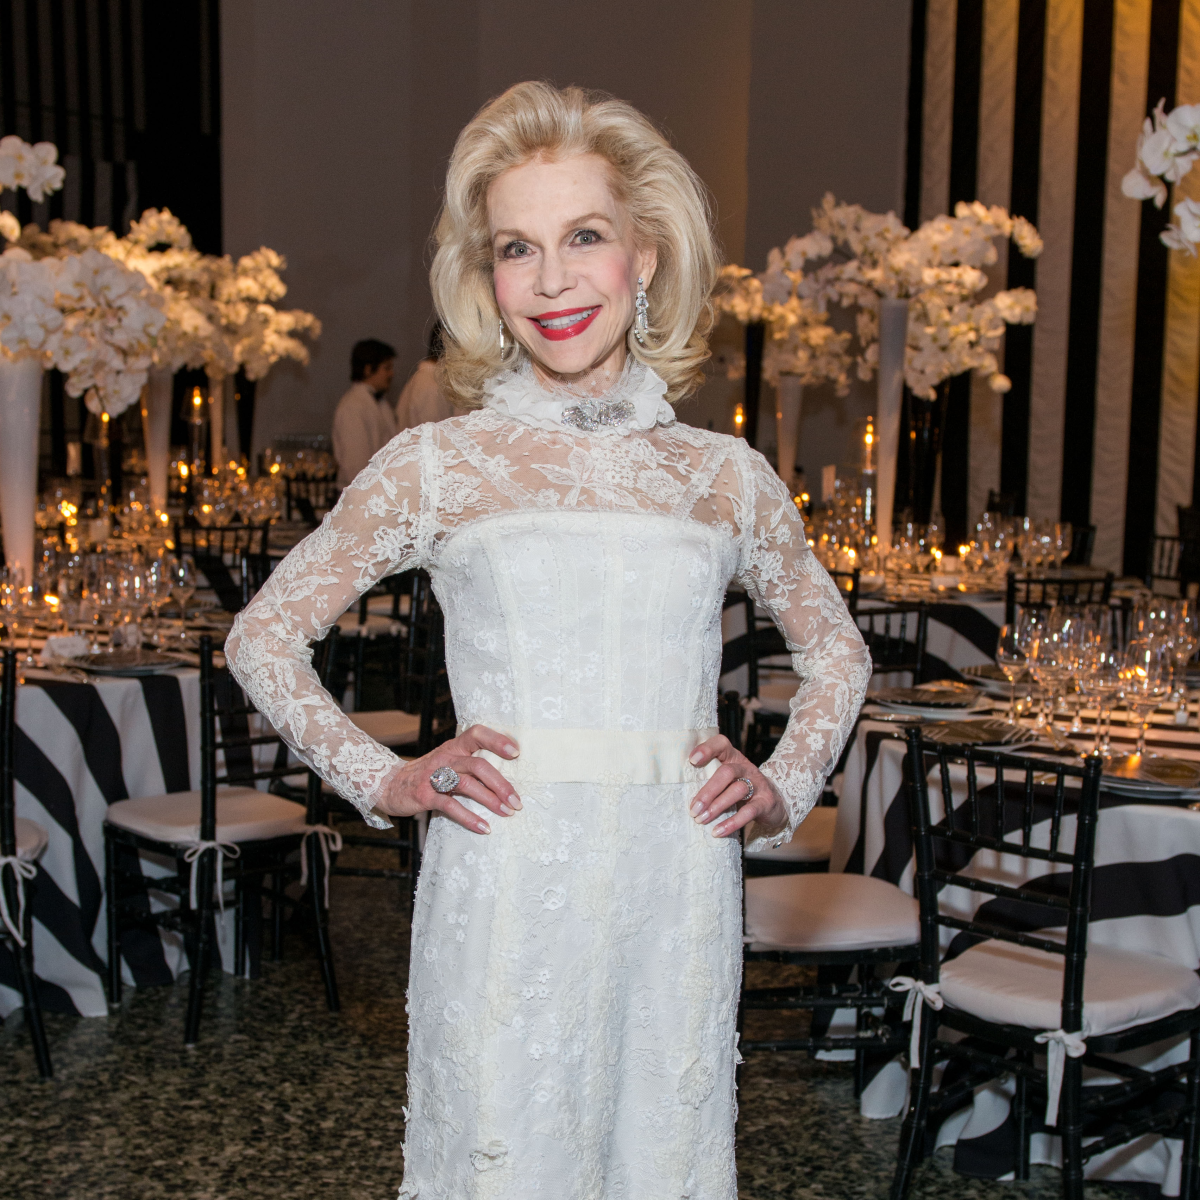 News, Shelby, MFAH gala gowns, Oct. 2015 Lynn Wyatt in Oscar de la Renta